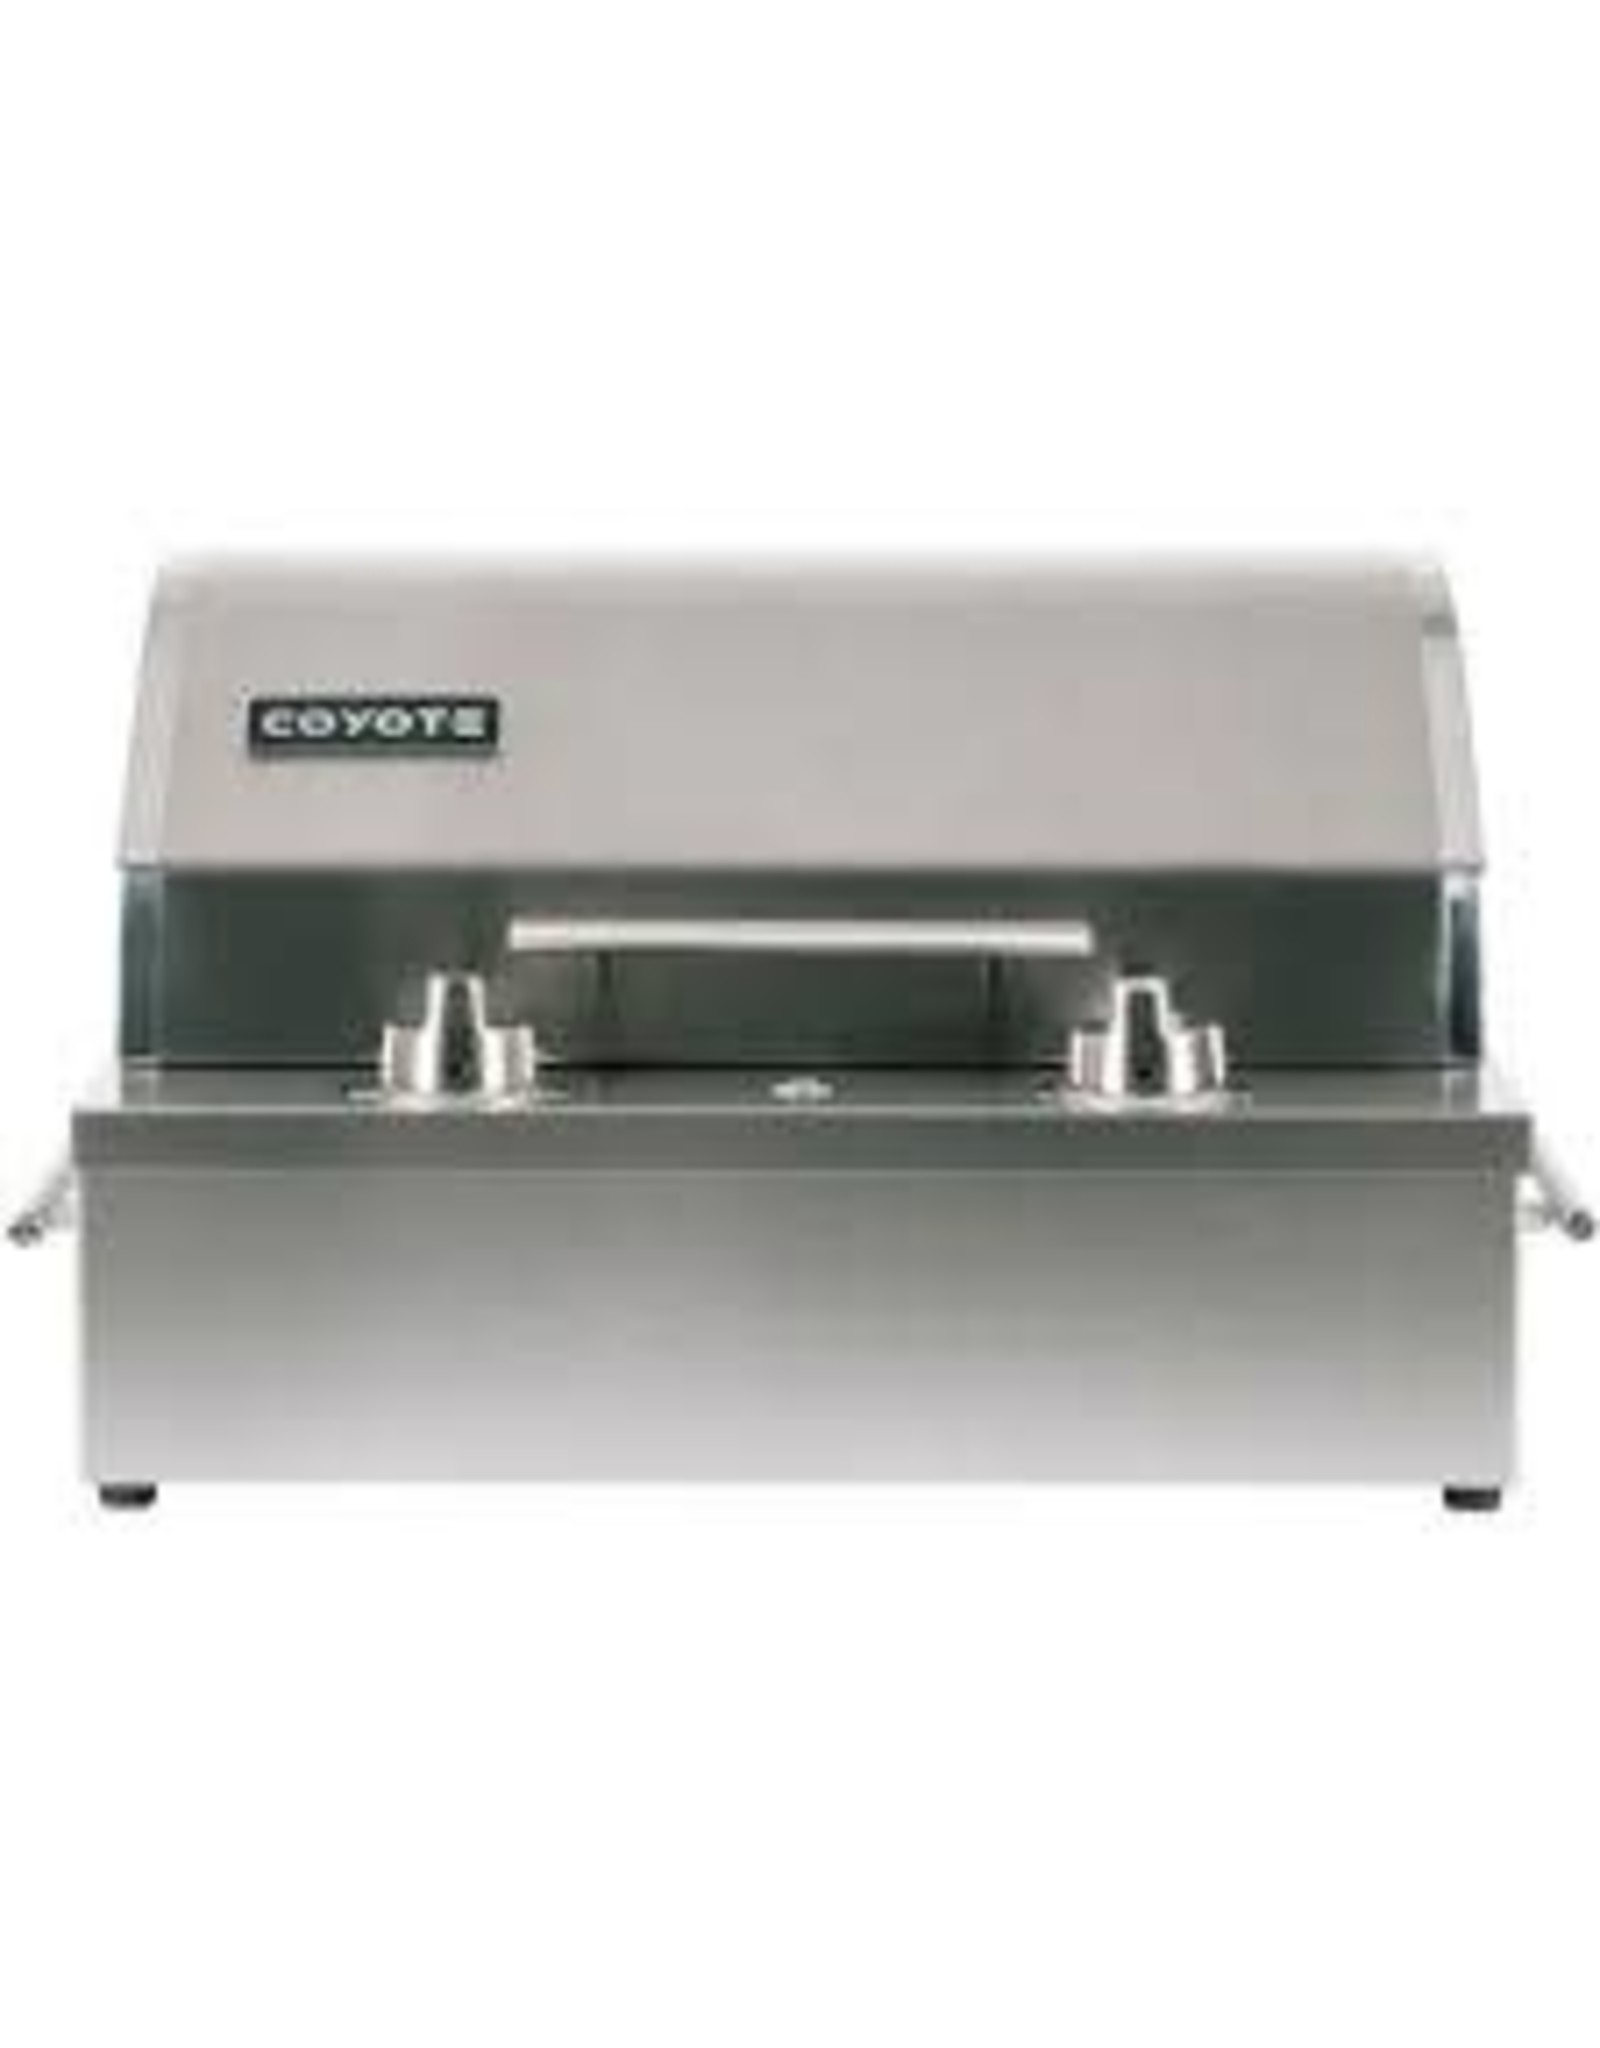 COYOTE Coyote 120V ElectriC Grill Single Burner Manual Control